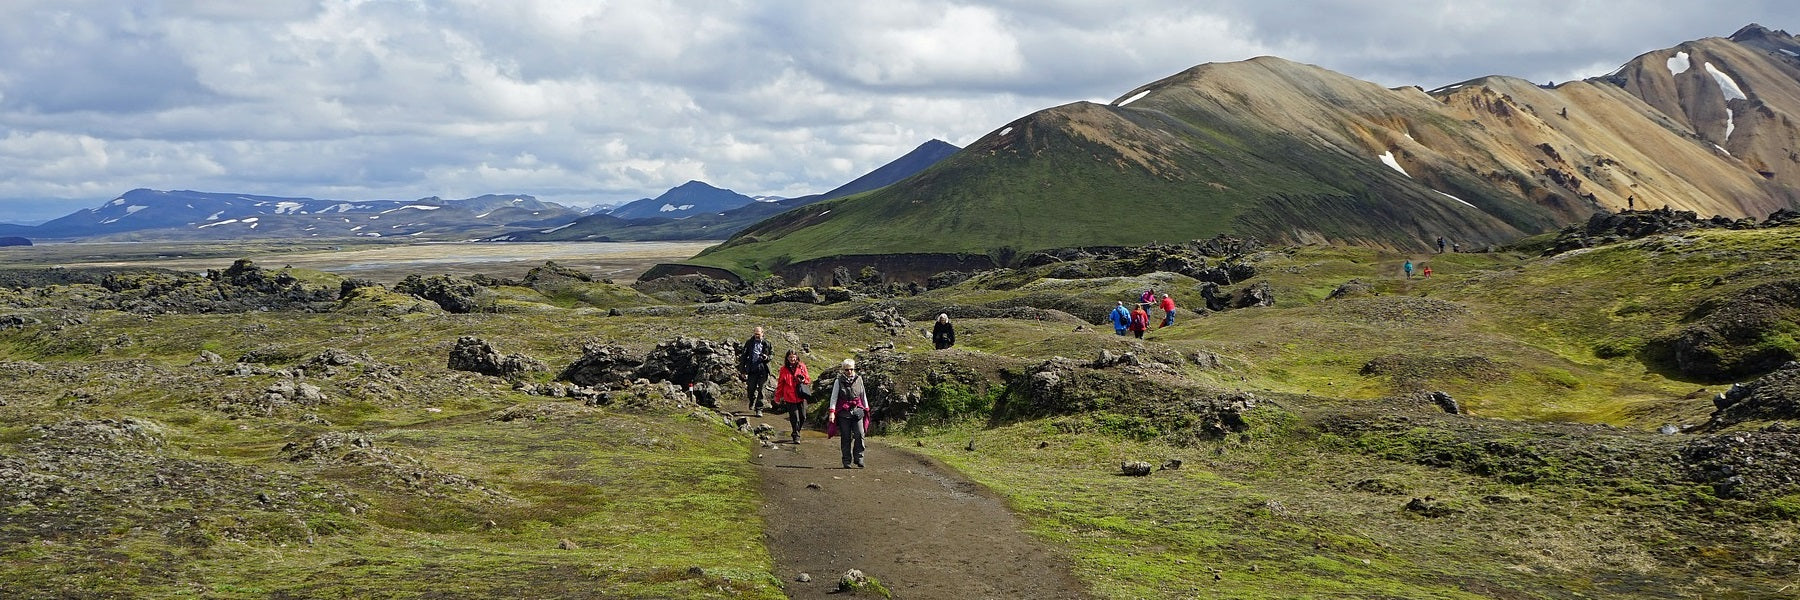 Volcanoes ice waterfalls and epic nature views are ready for you in Iceland on our Trail Running Adventure Tour